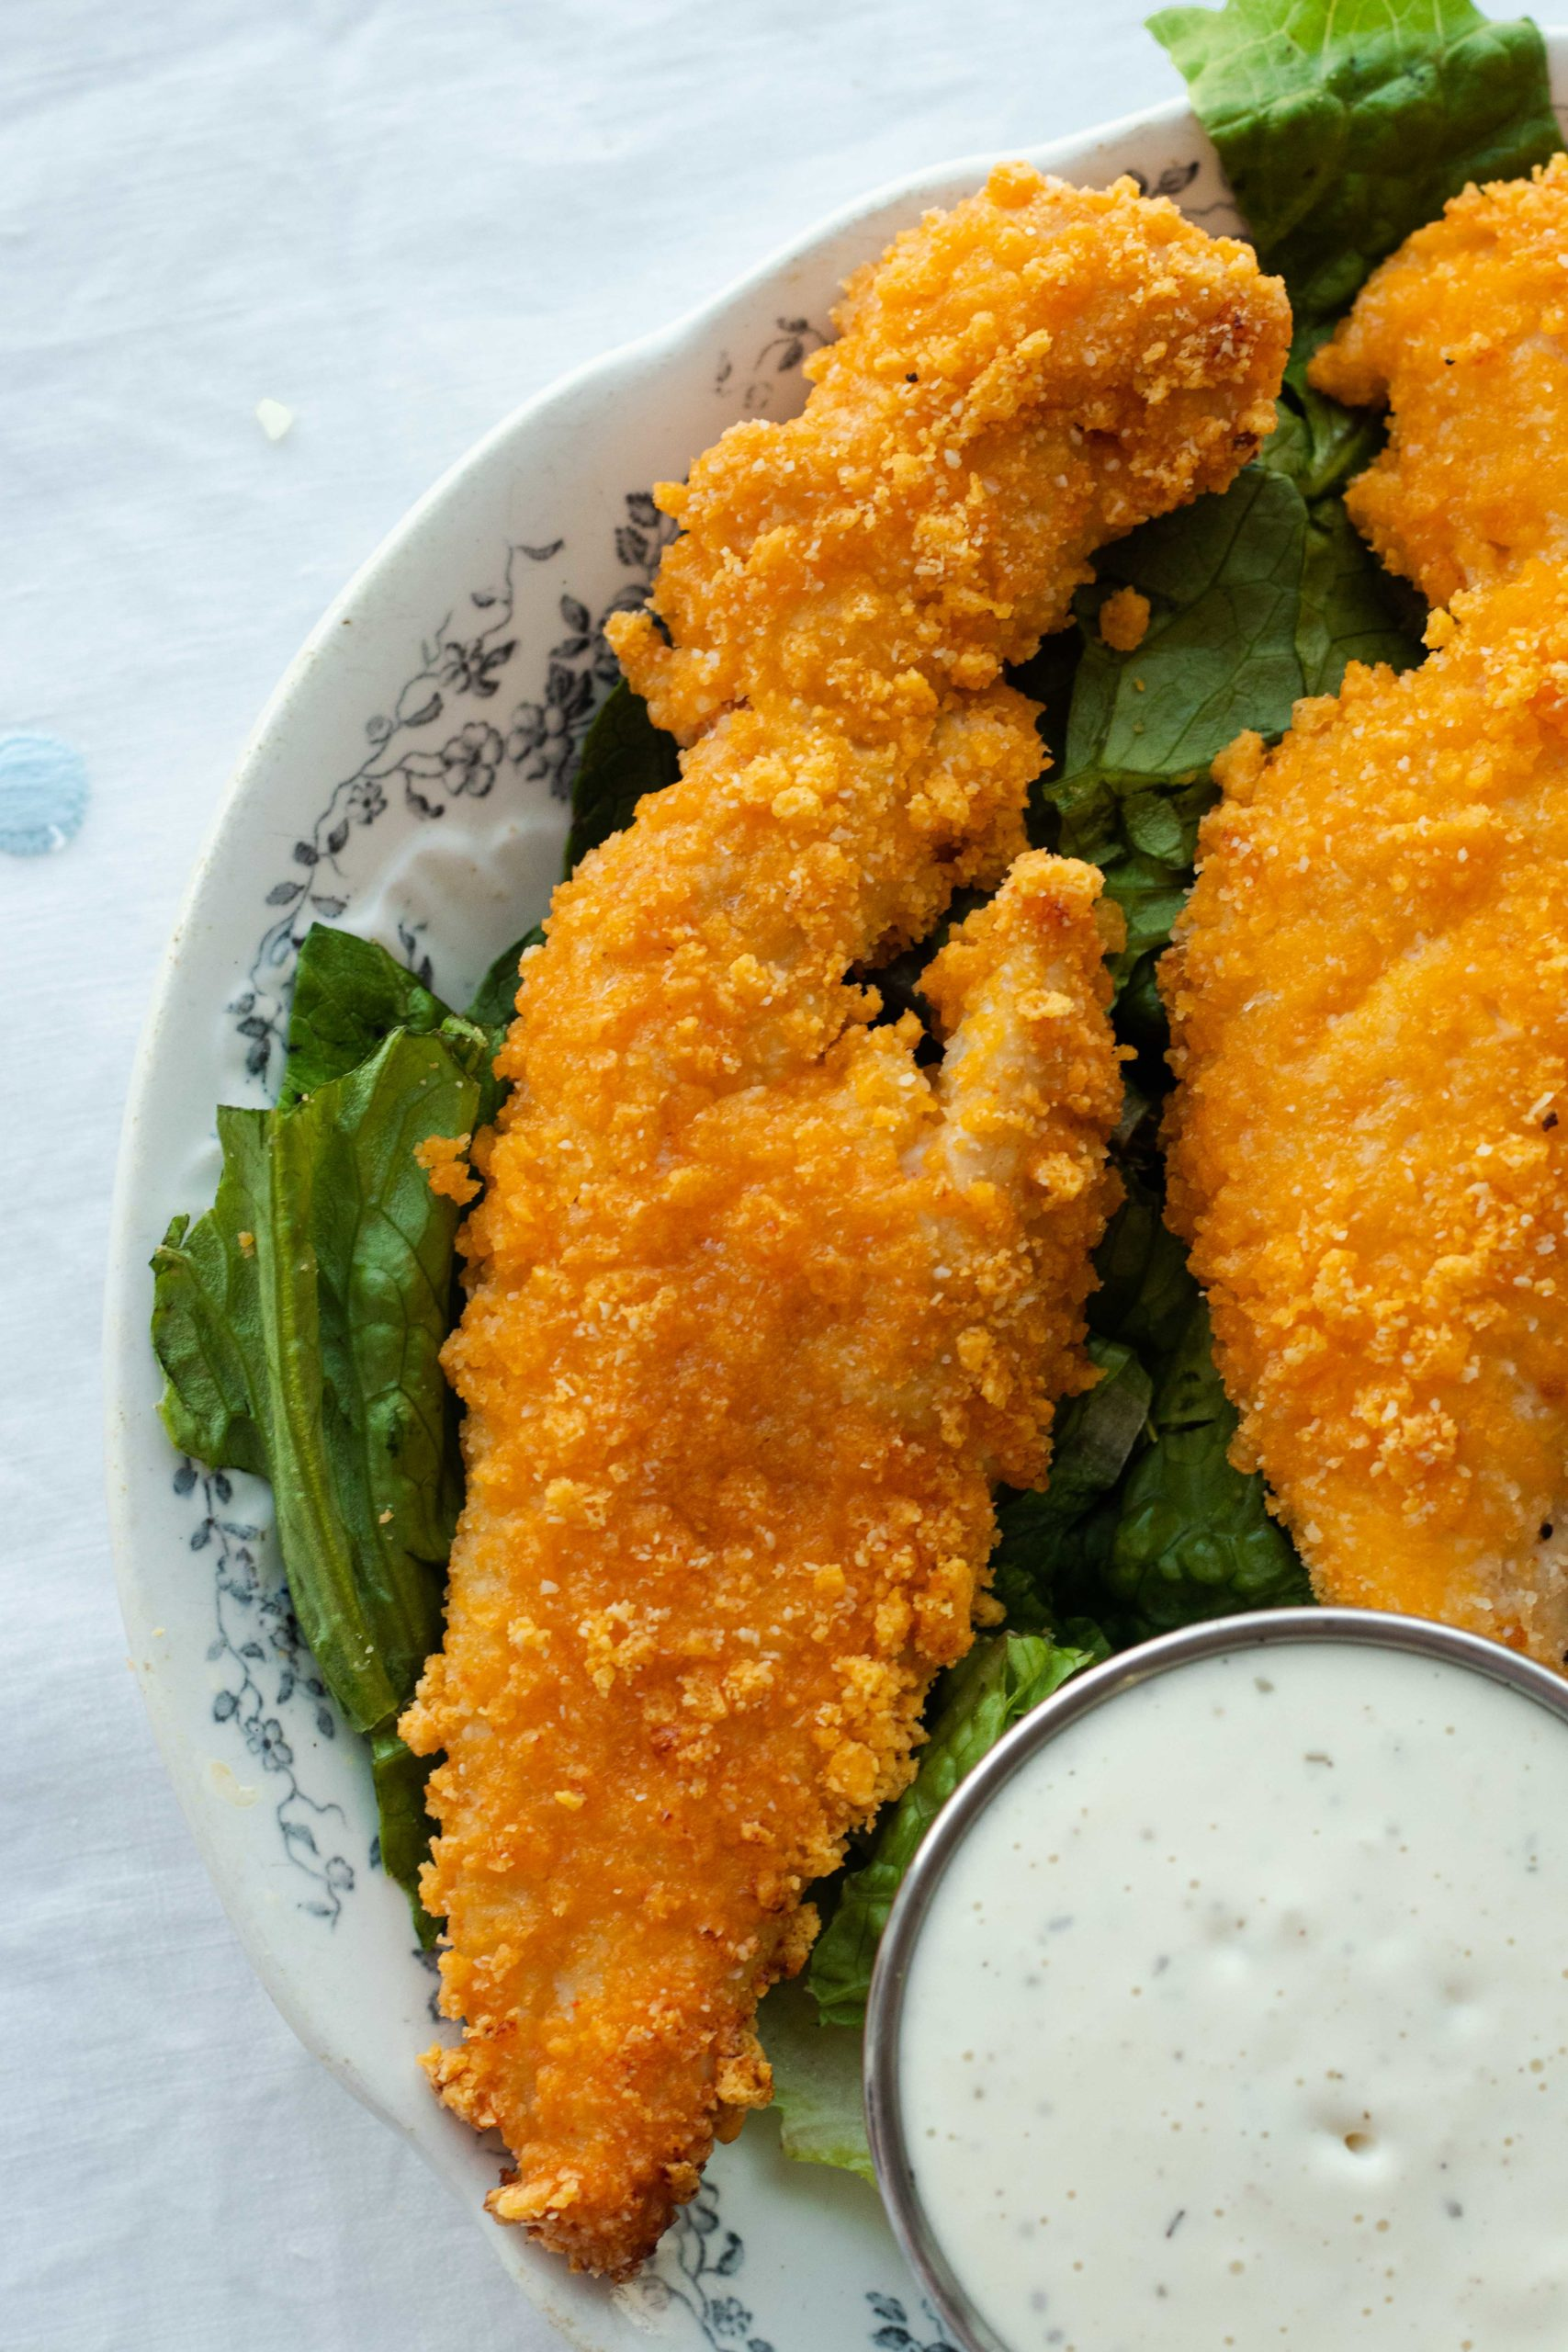 Chicken tenders are brined in buttermilk and then breaded in a crunchy cheese breading before getting baked to perfection. No eggs or pork rinds required!